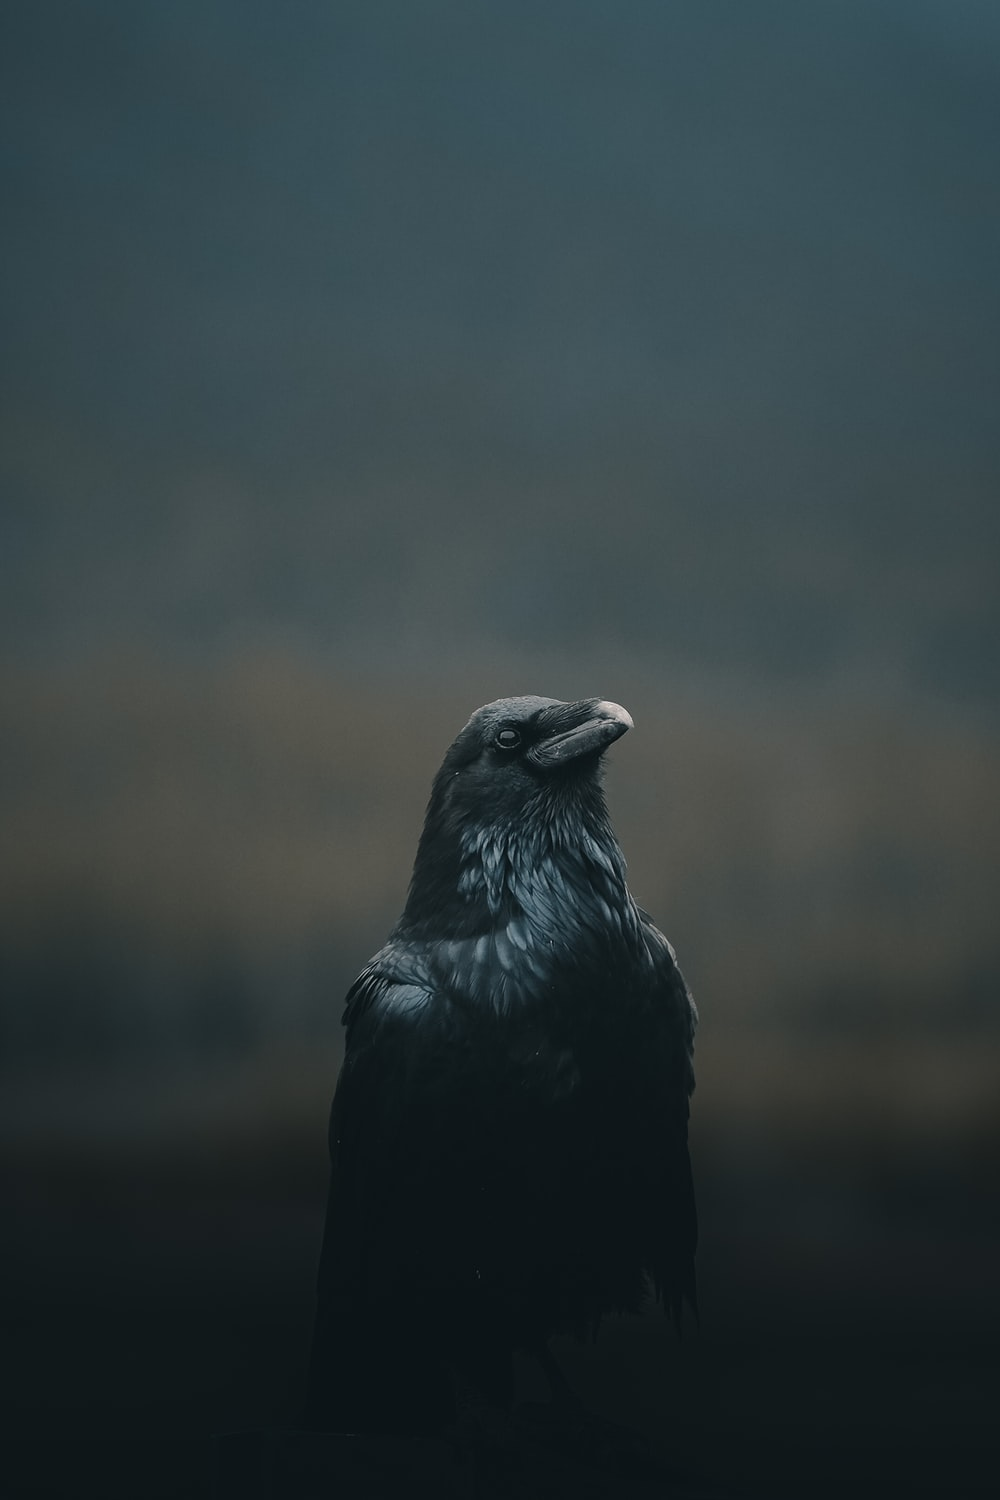 black bird close up photography